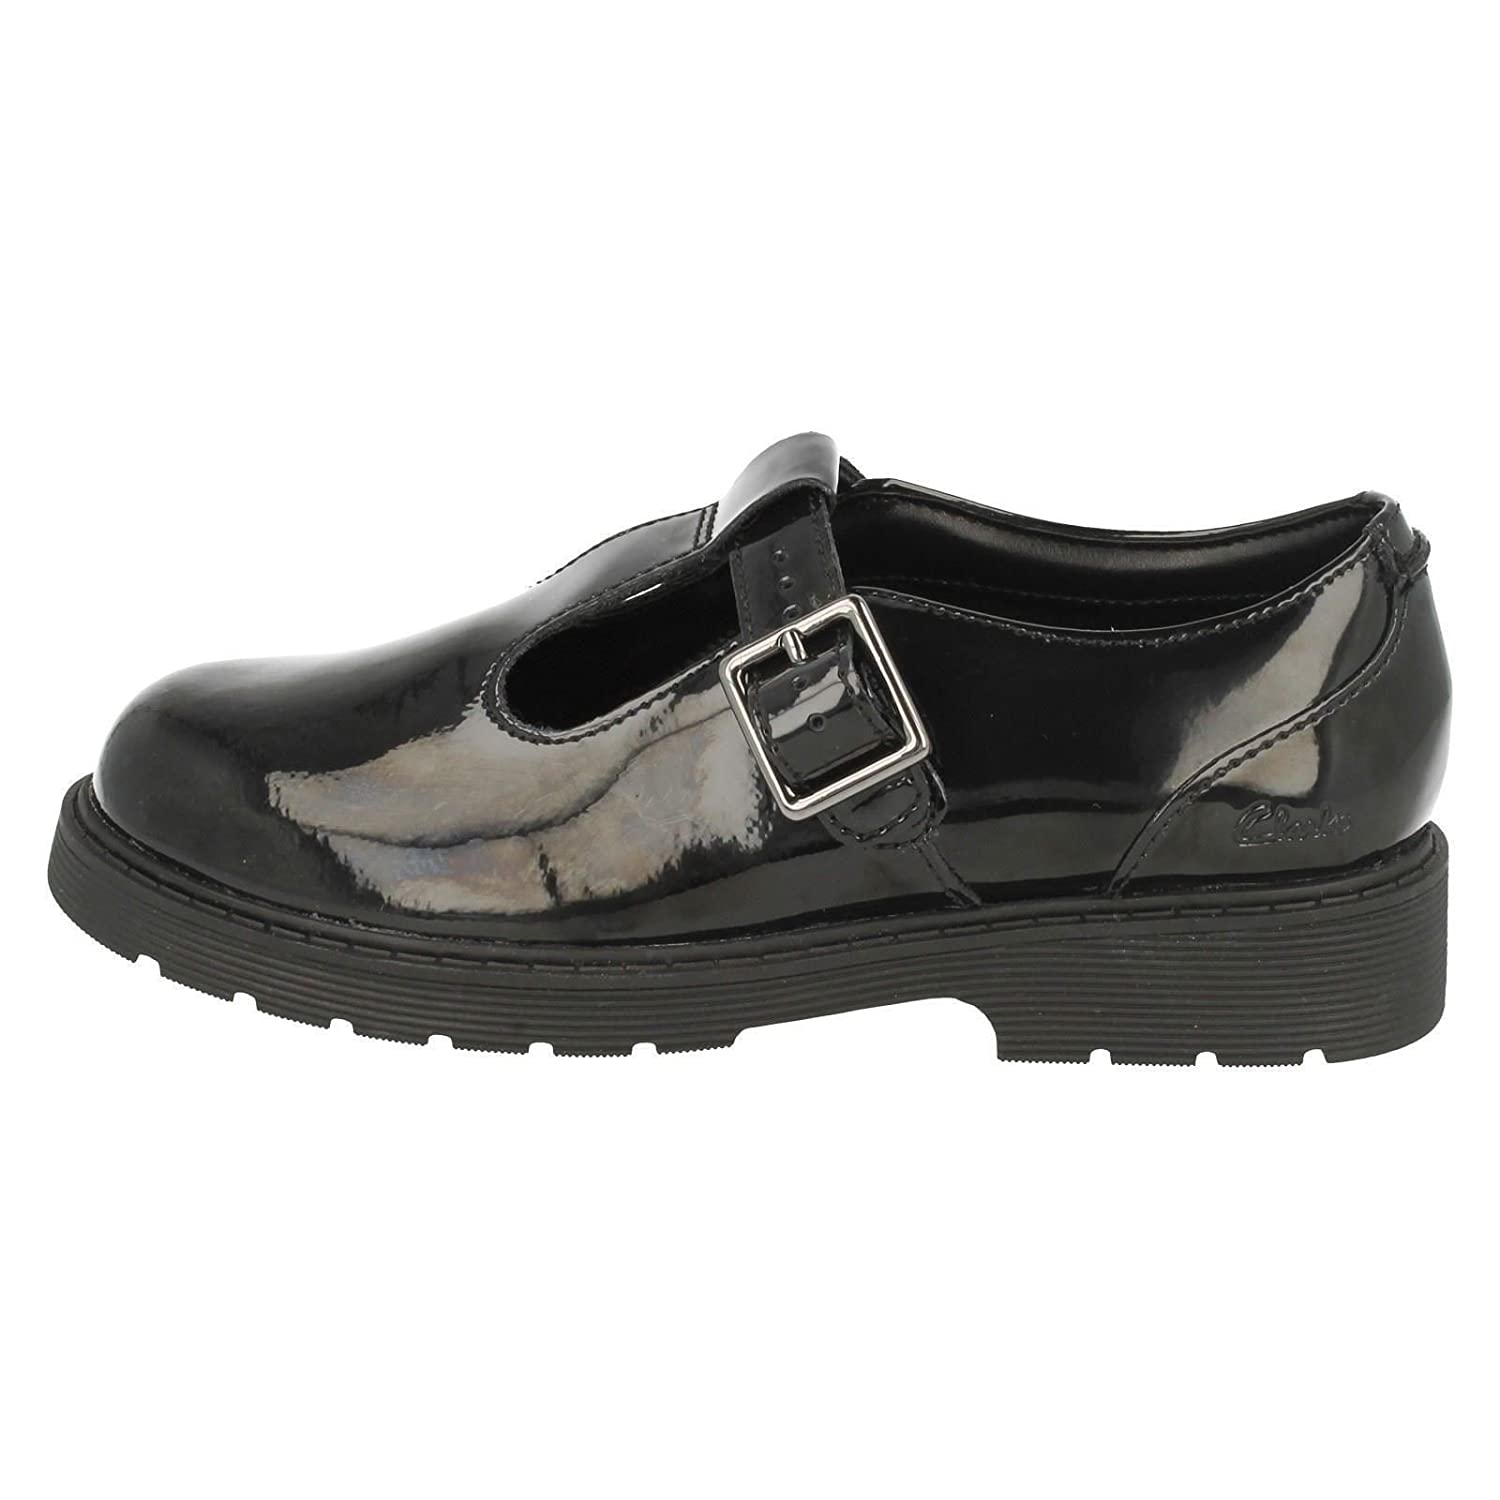 f93c4e1a clarks womens dress shoes Girls